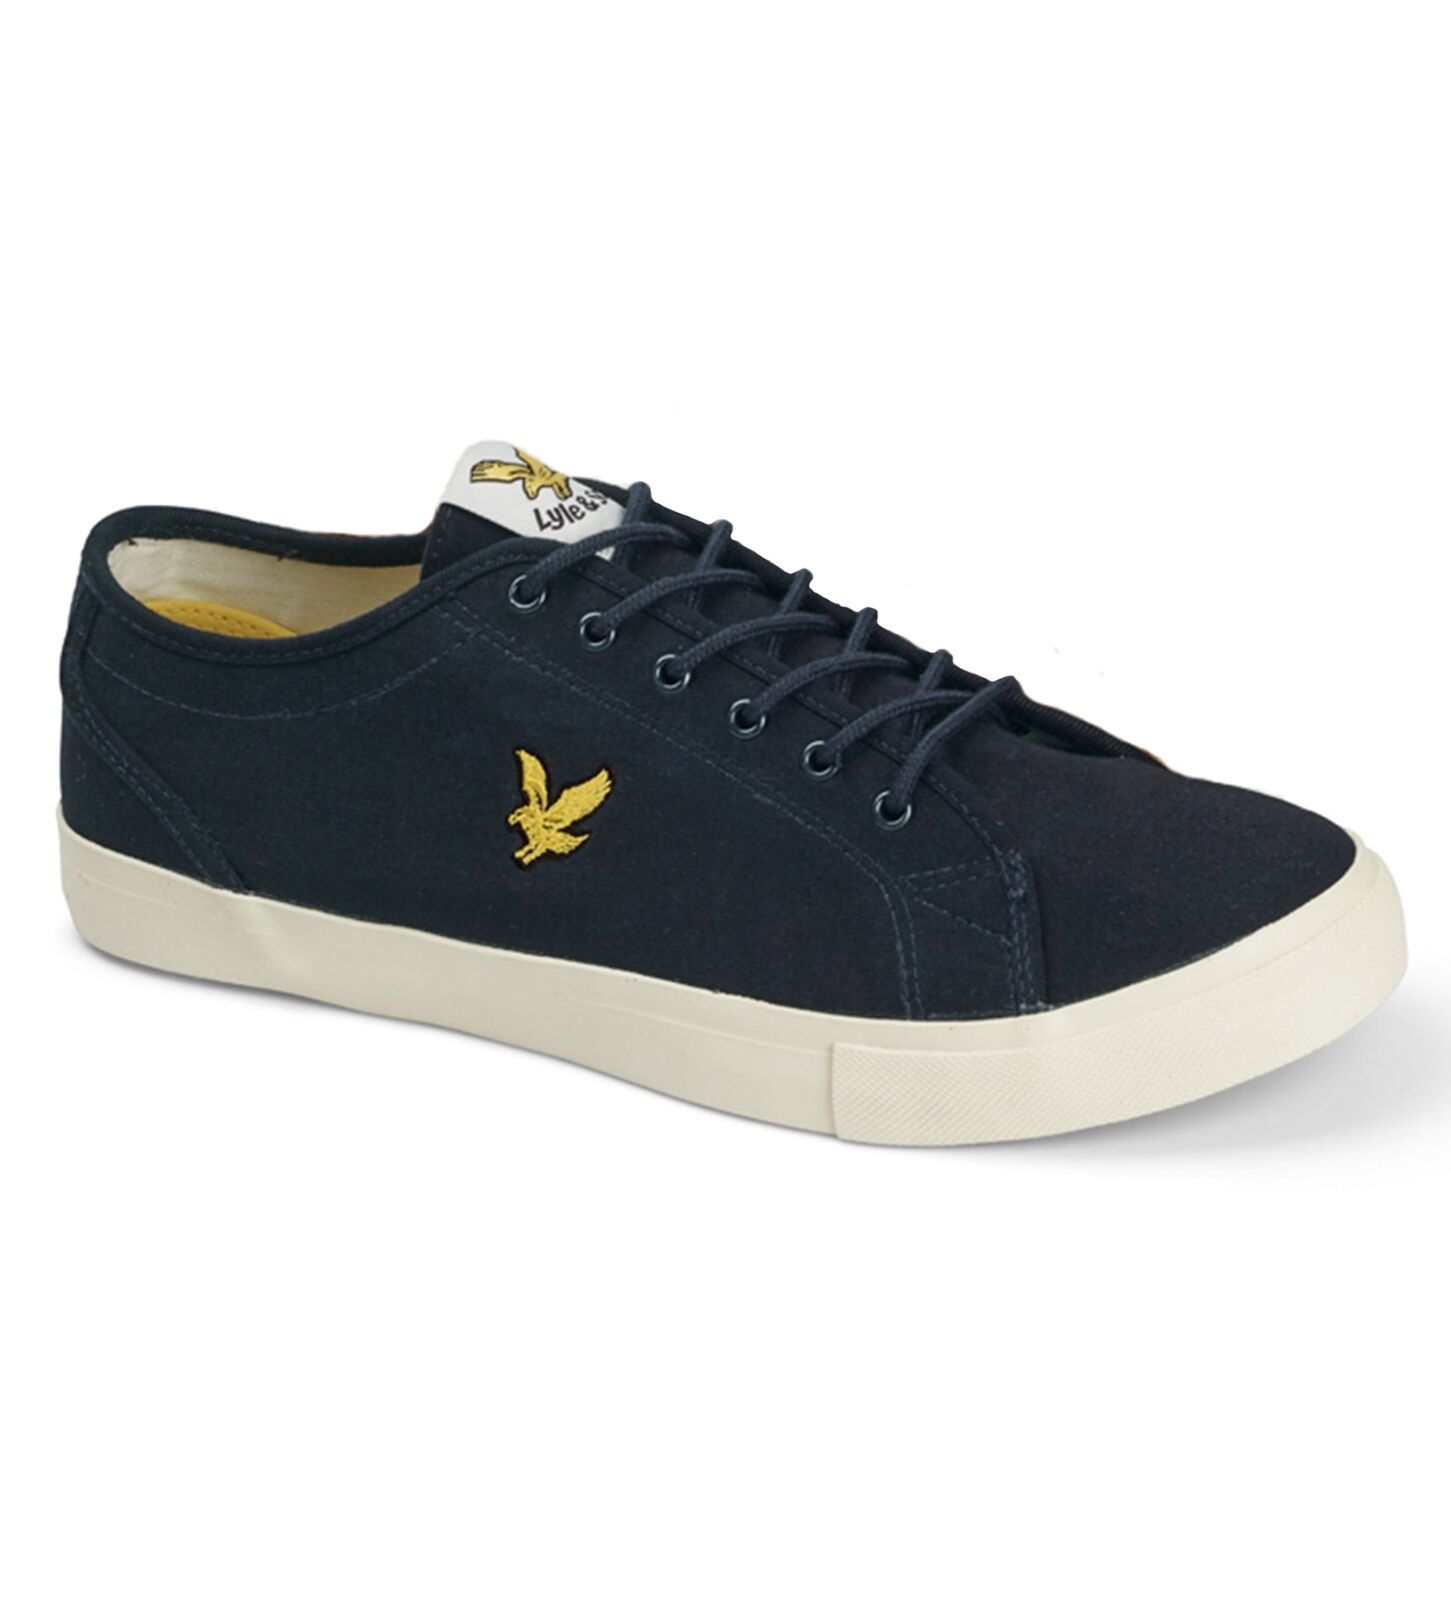 Lyle & scott Eagle Leinen Teviot Twill Mode Plimsolls Turnschuhe Marineblau